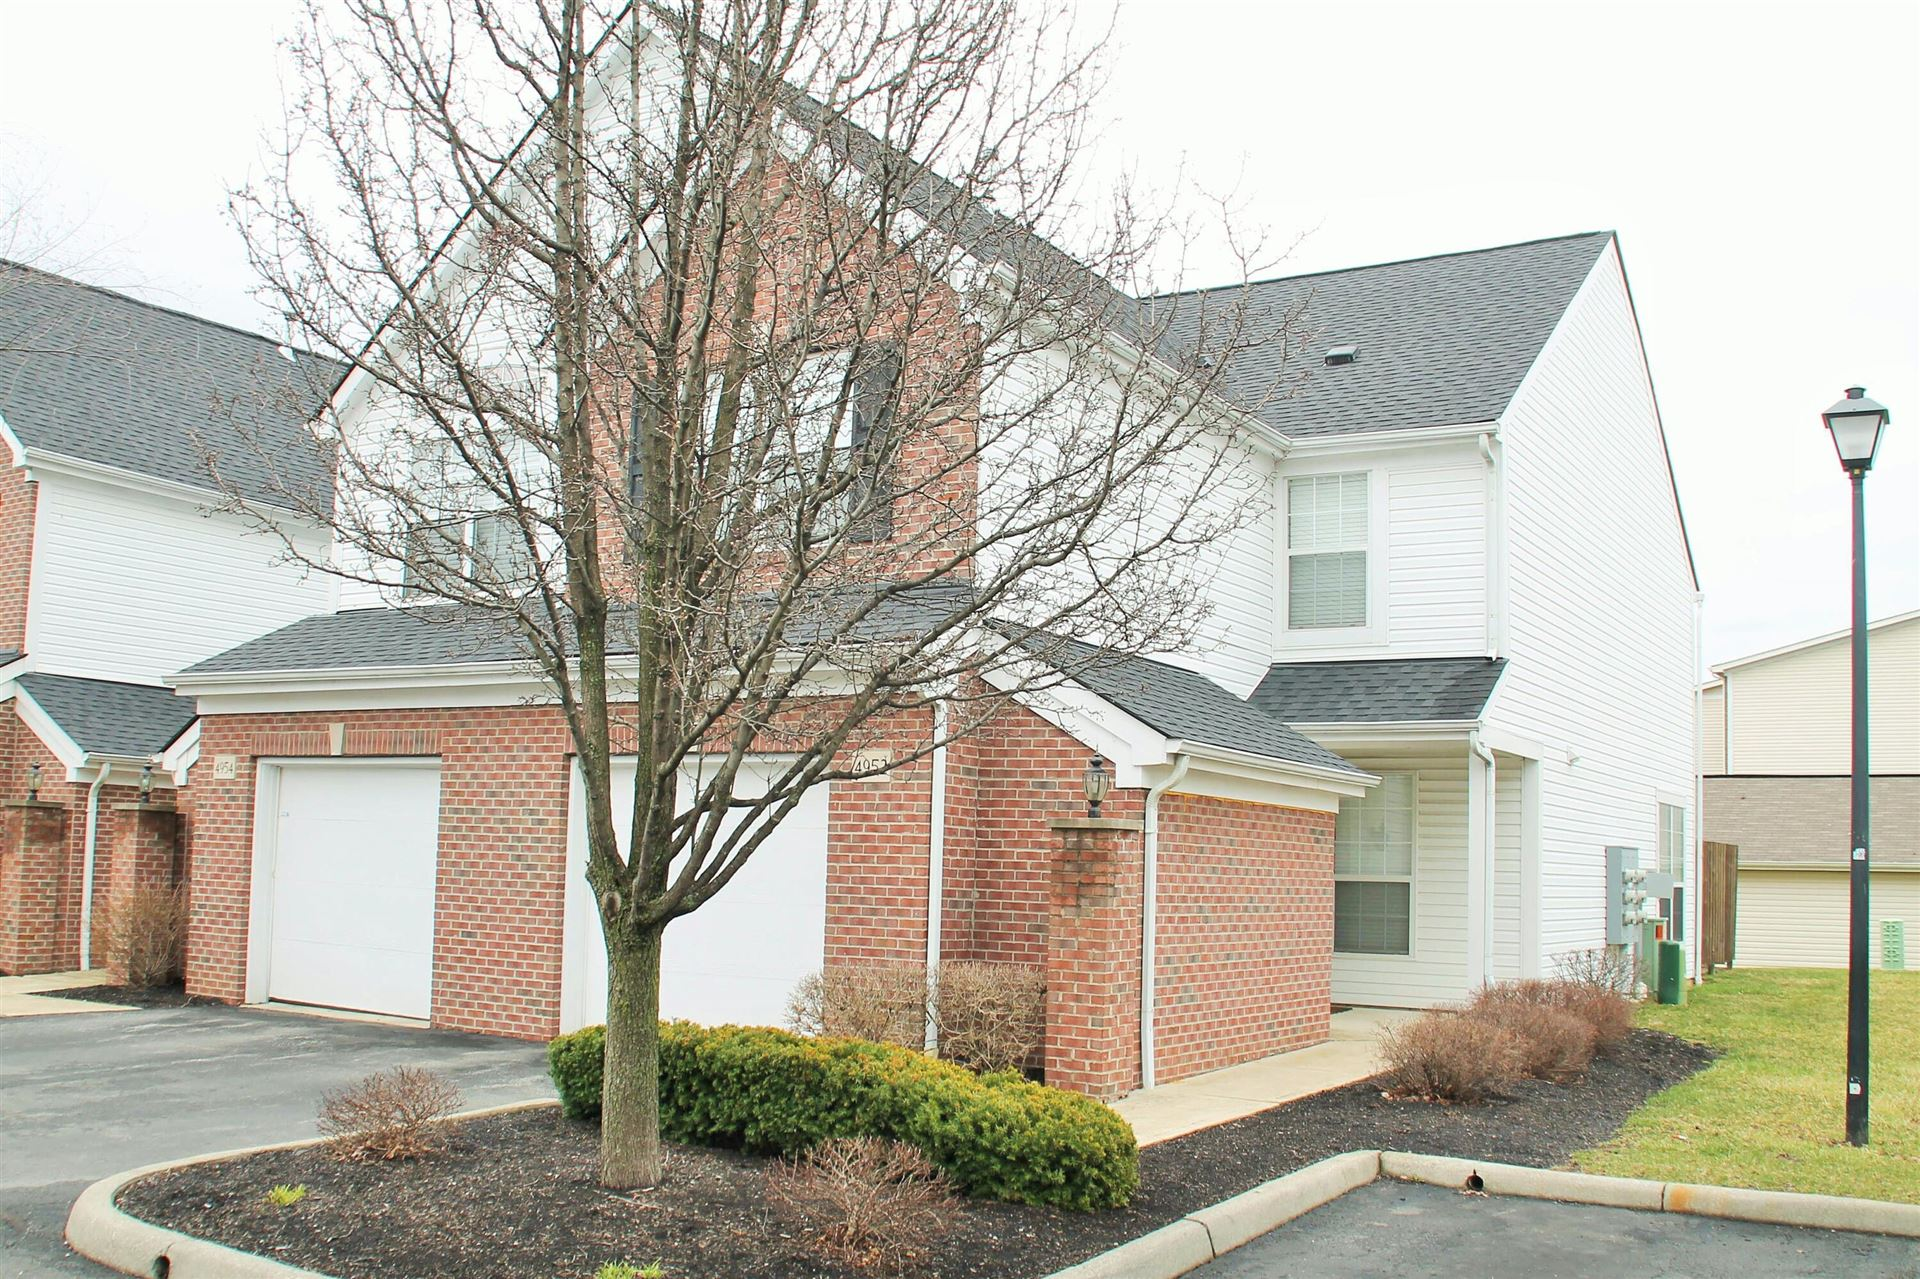 Photo of 4952 Albany Meadow, Westerville, OH 43081 (MLS # 221040371)